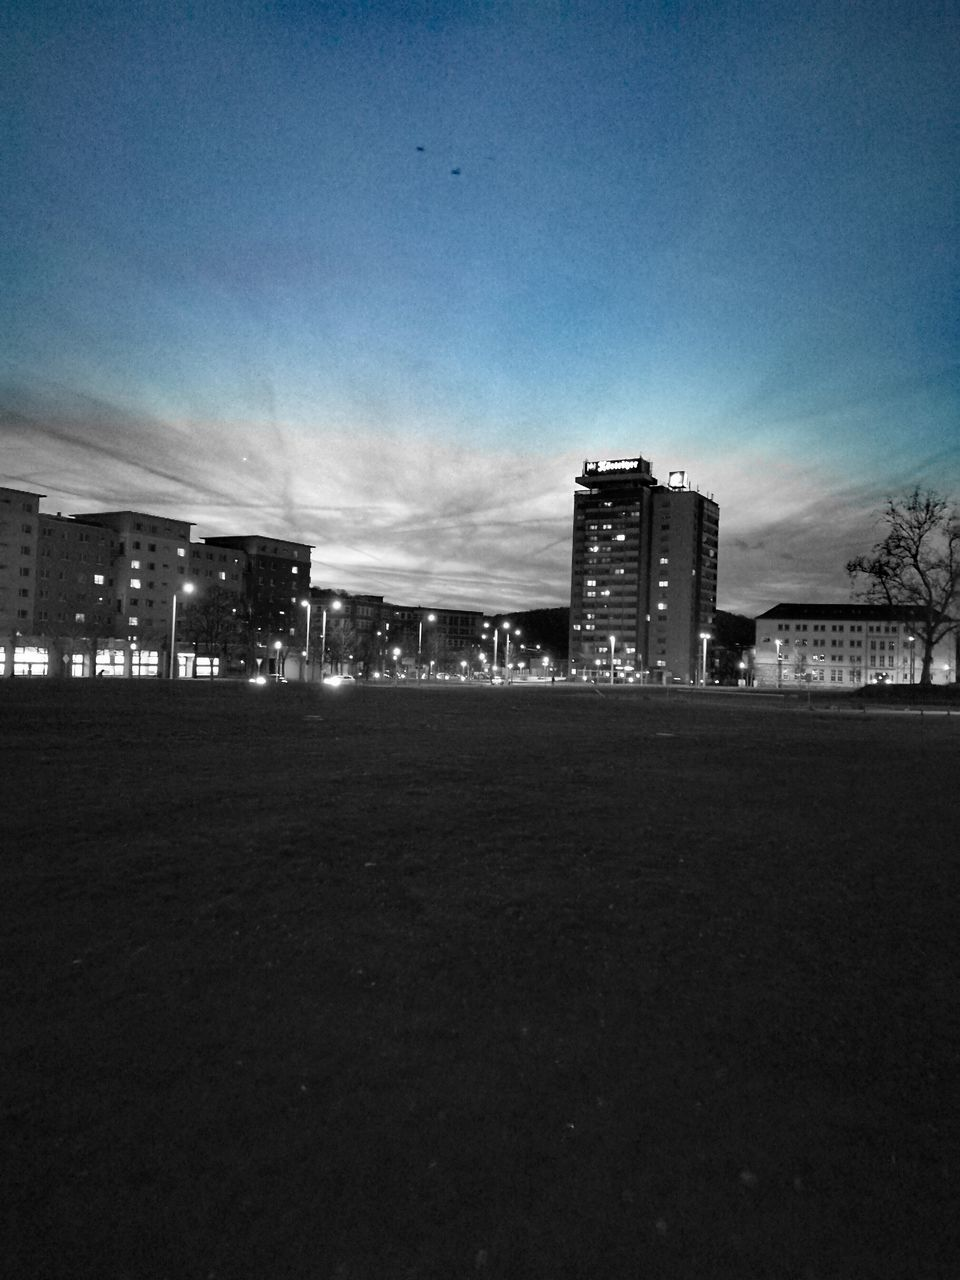 architecture, built structure, building exterior, sky, outdoors, city, illuminated, no people, day